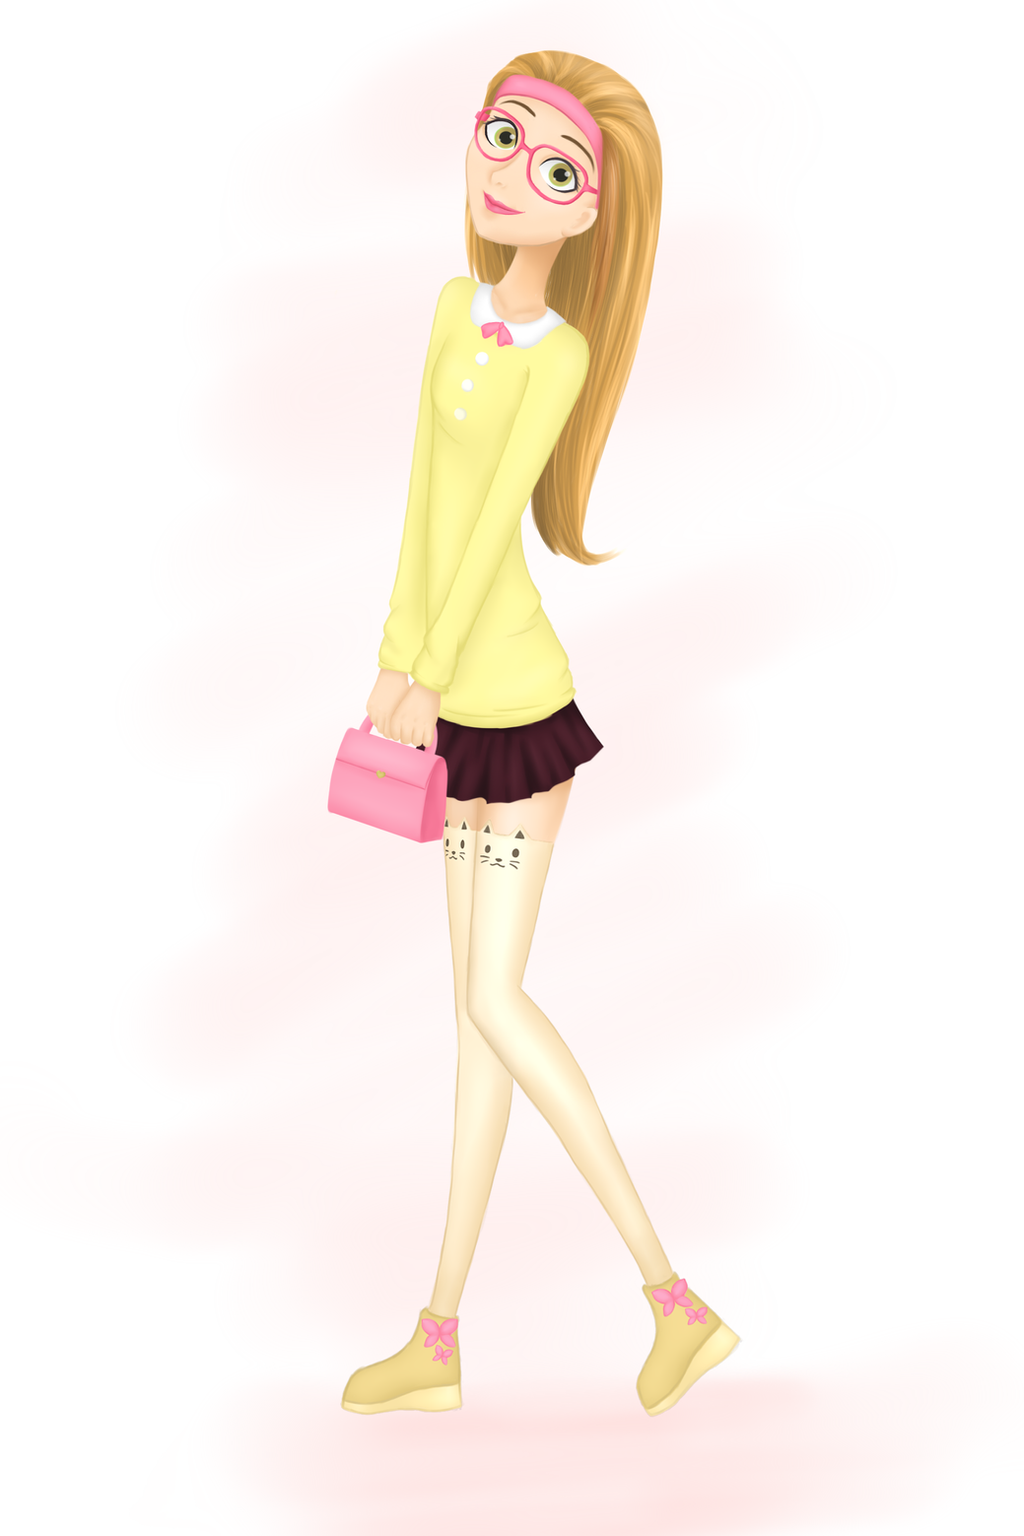 The Other Problem with Honey Lemon: Her Heels